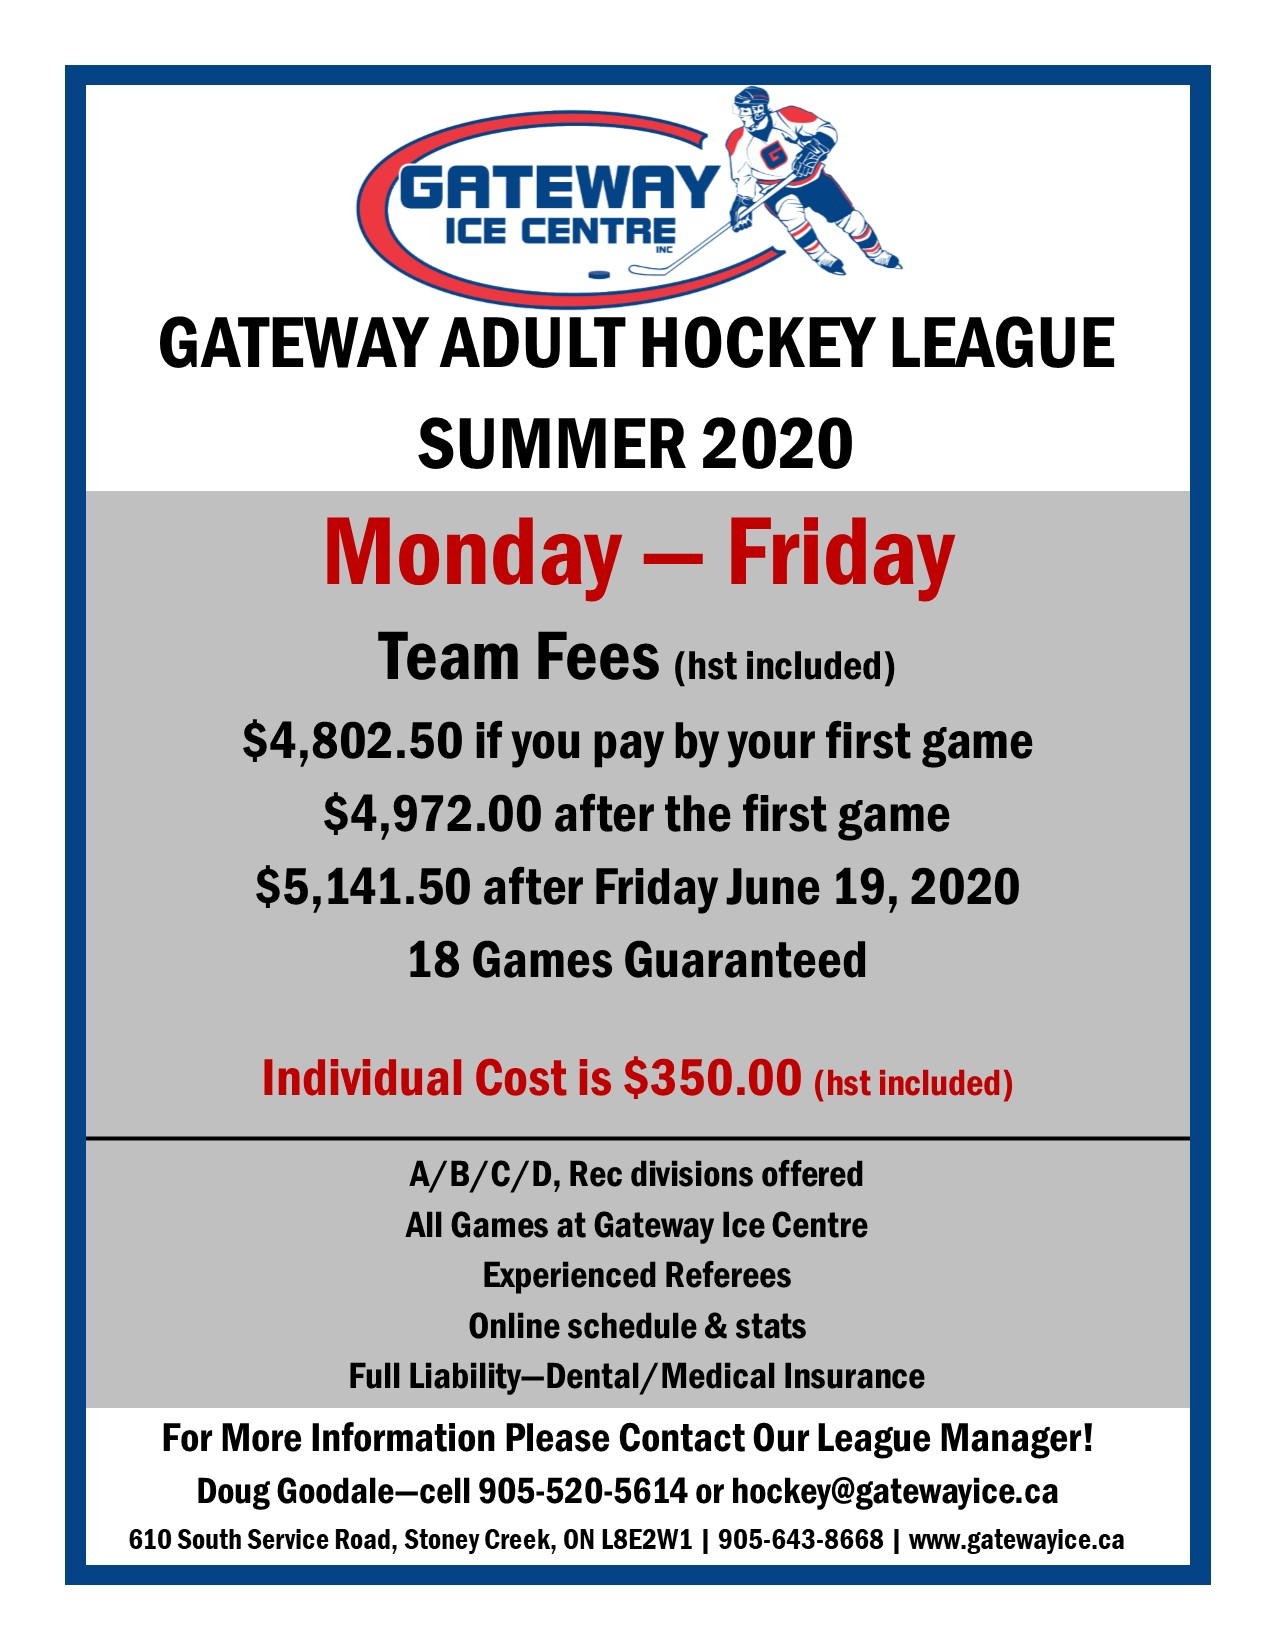 Hockey League Flyer - Summer 2020